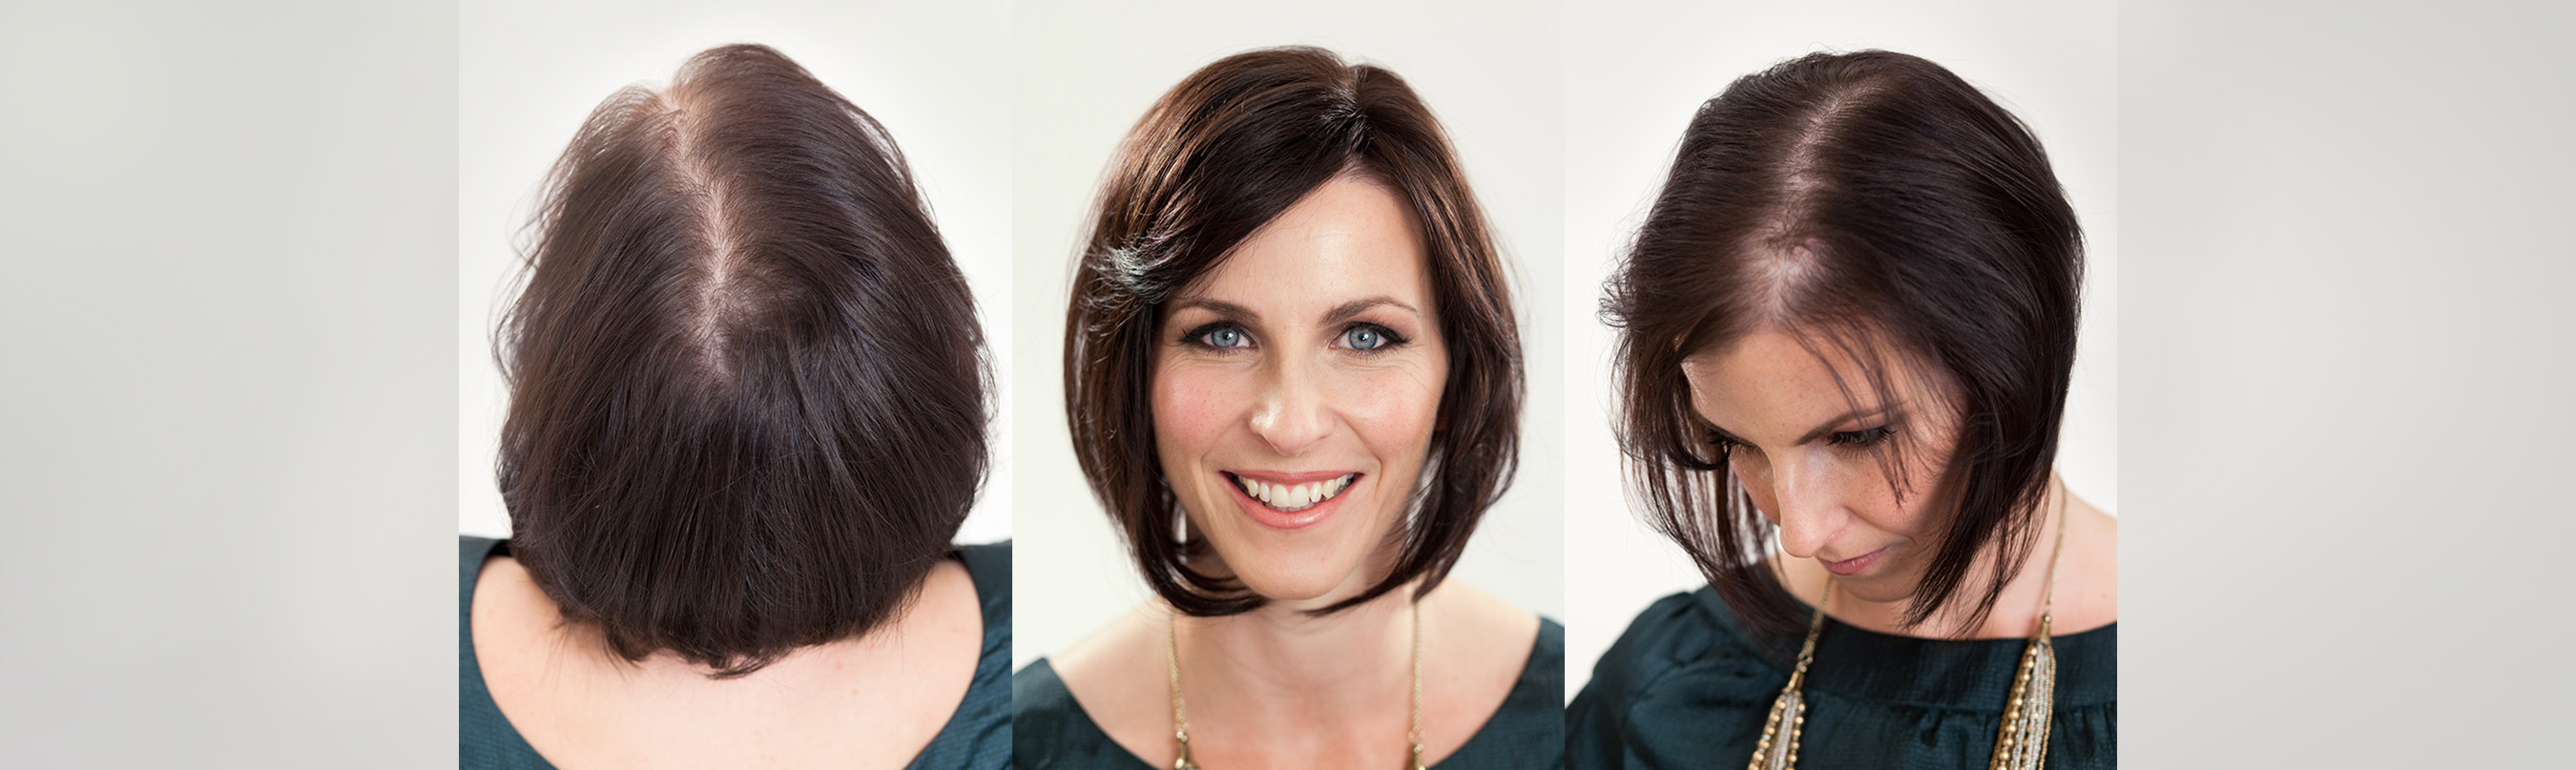 Hair Loss In Women Transitions Hair